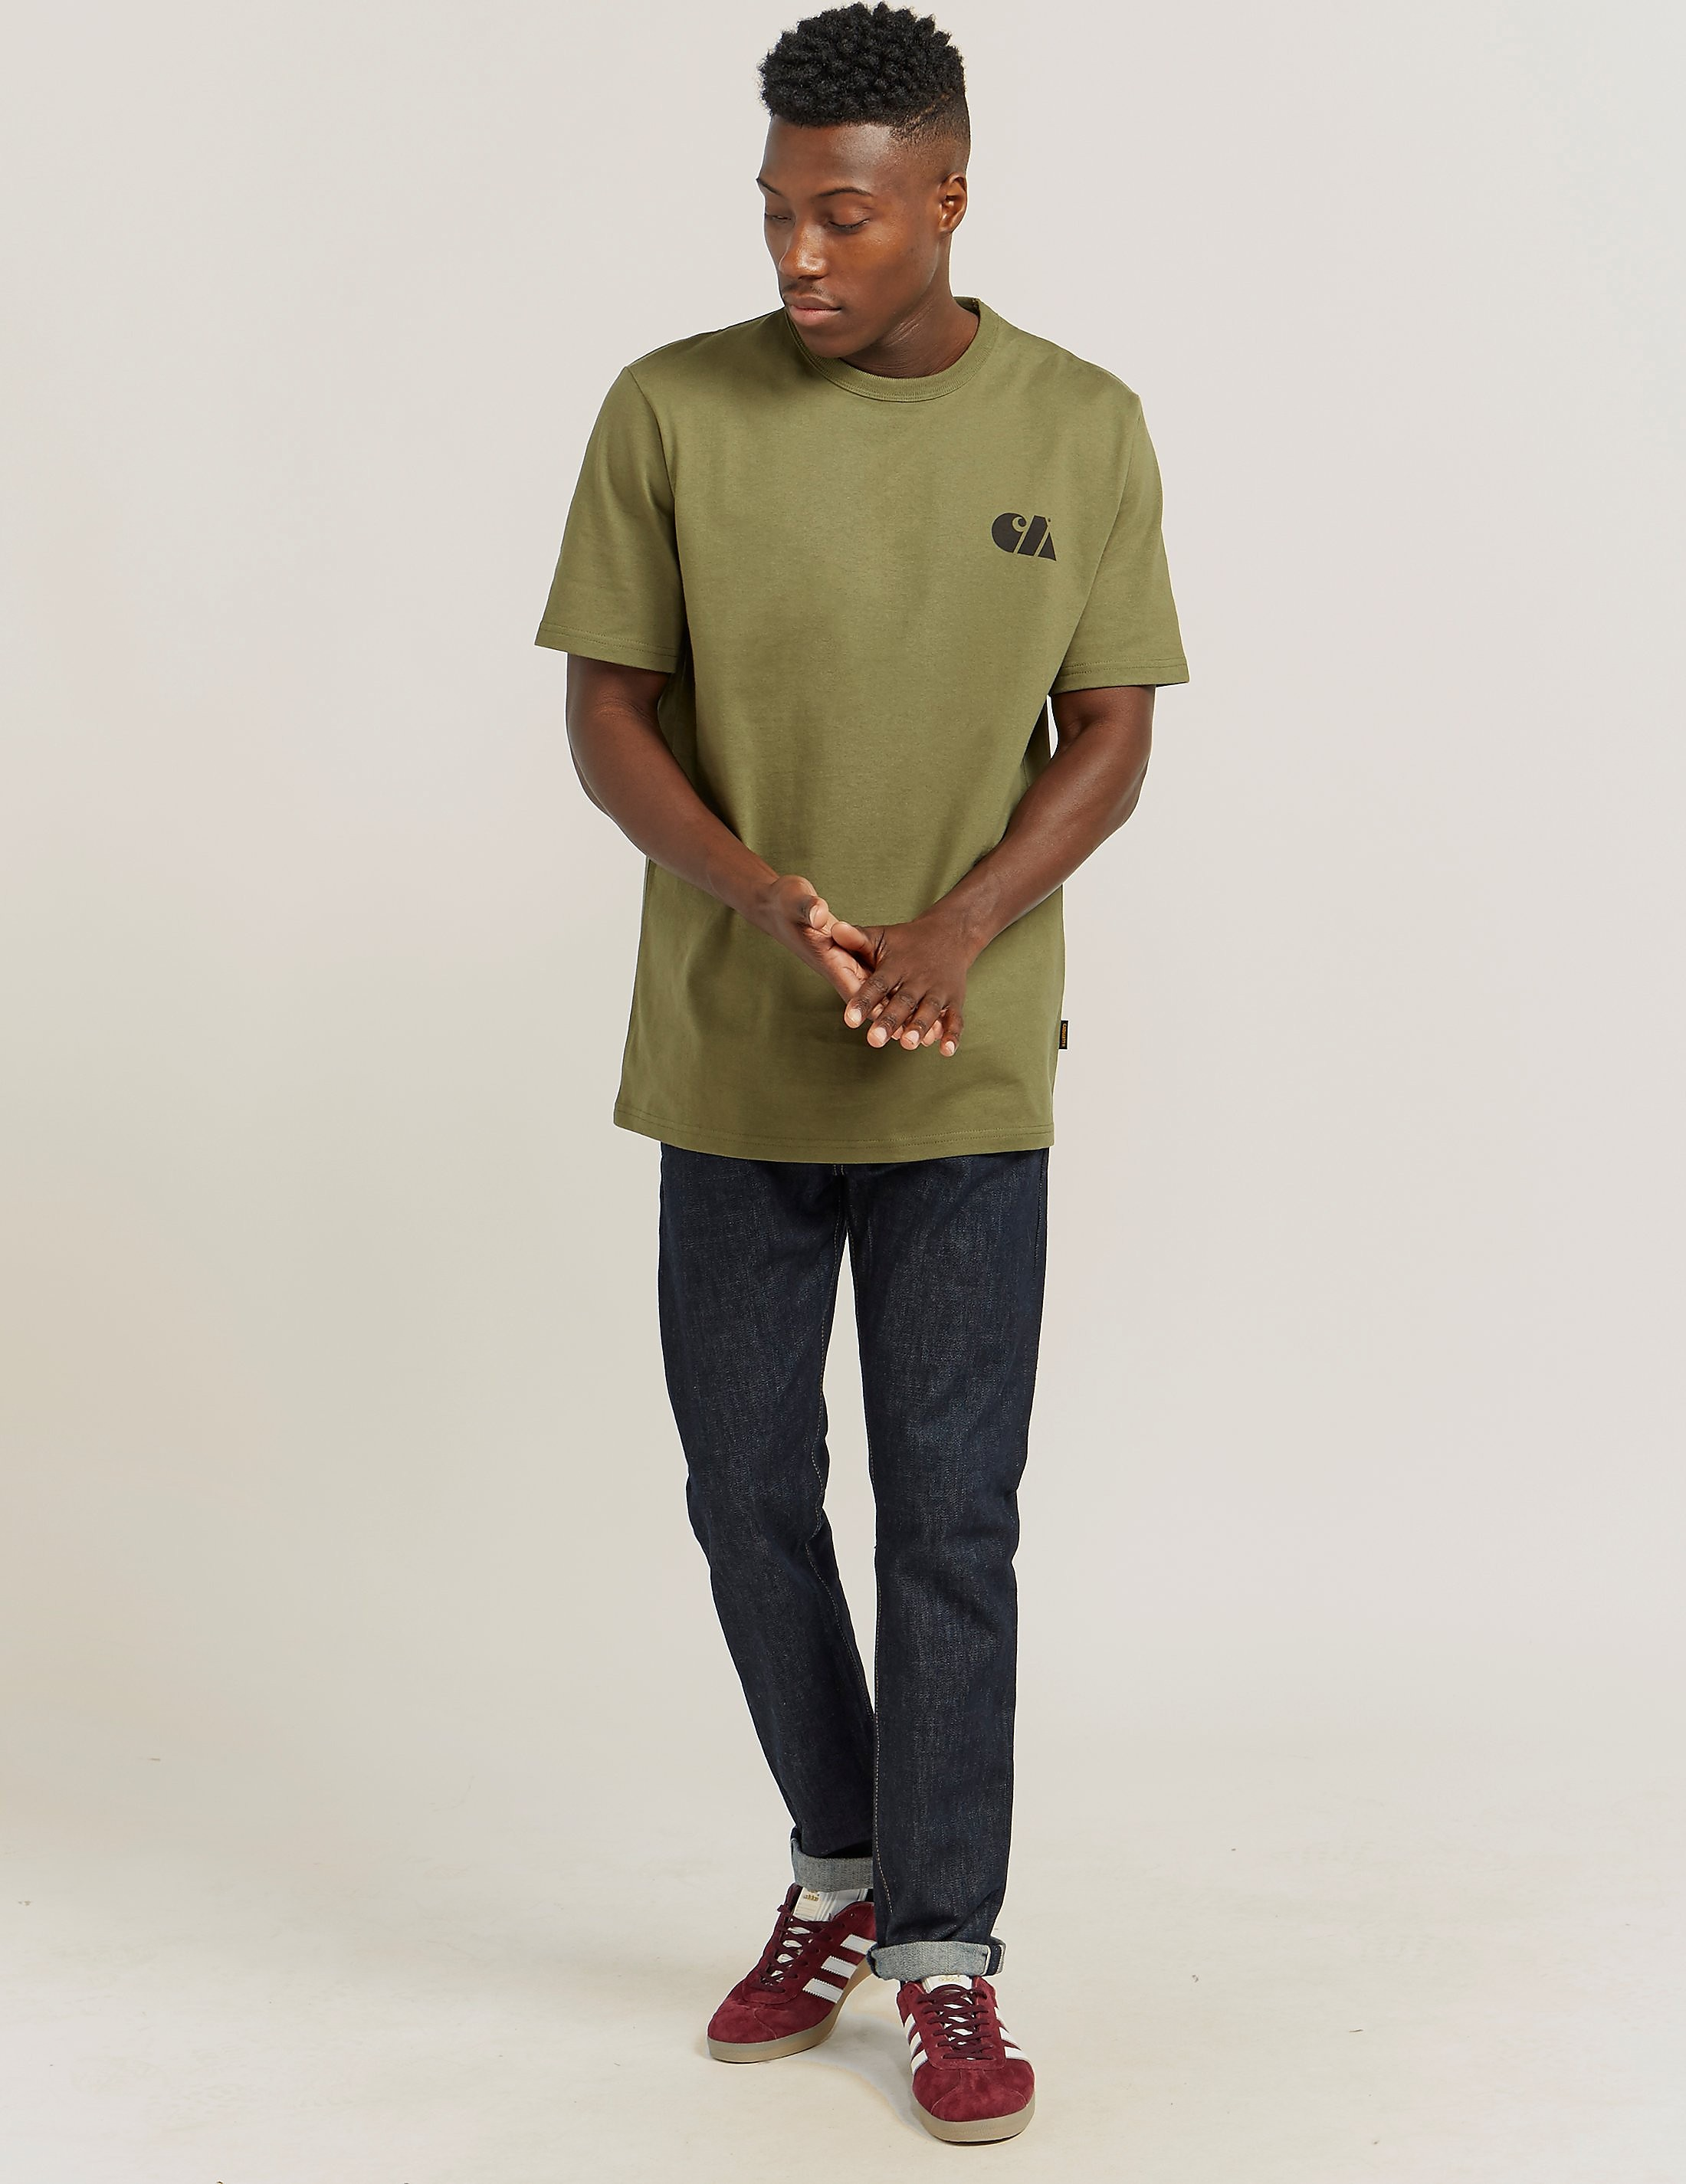 Carhartt WIP Military Short Sleeve T-Shirt